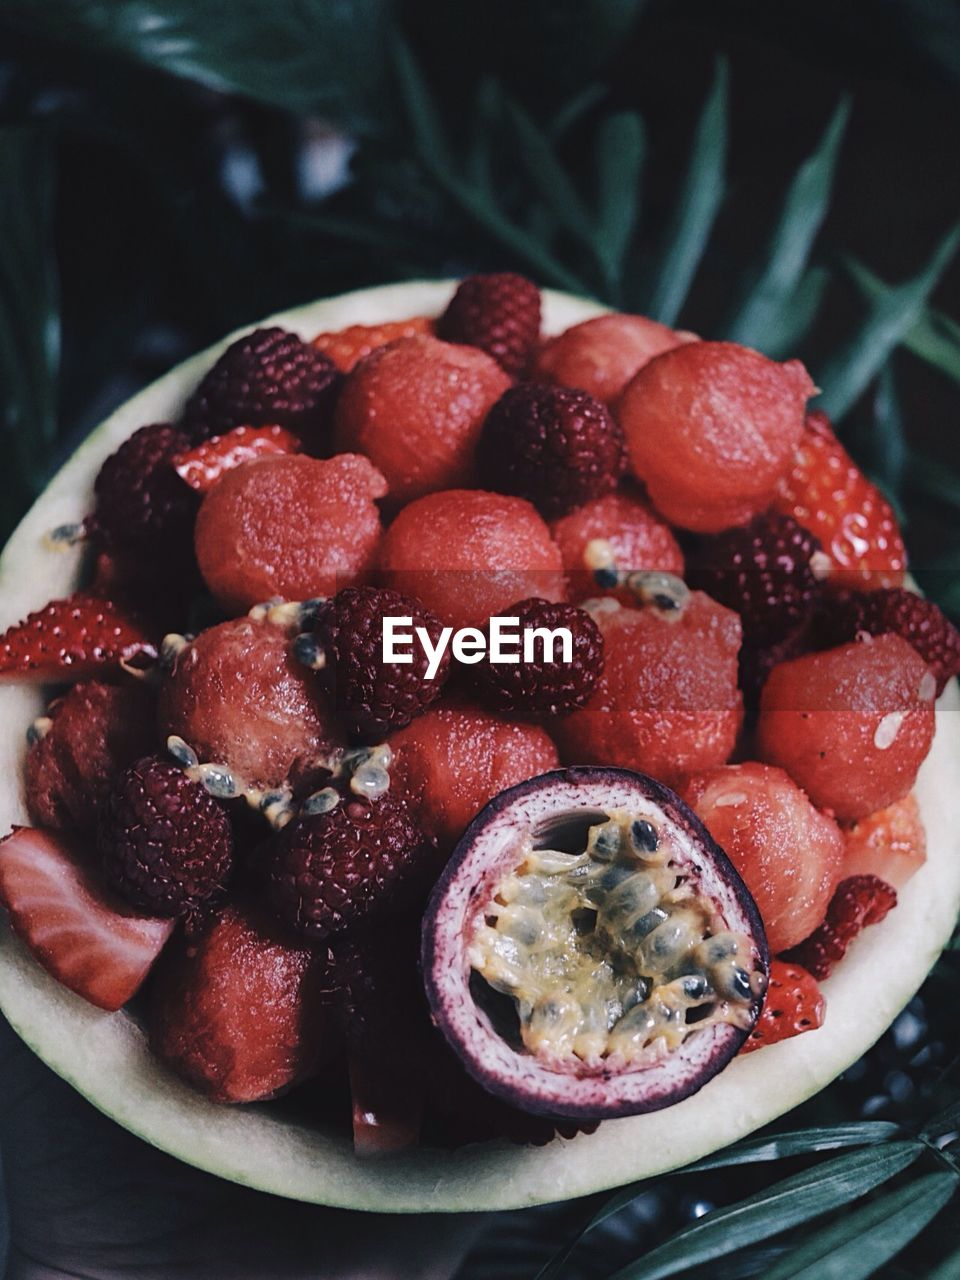 food, fruit, food and drink, healthy eating, berry fruit, freshness, strawberry, wellbeing, close-up, red, indoors, no people, ready-to-eat, bowl, still life, juicy, plate, ripe, sweet food, raspberry, fruit salad